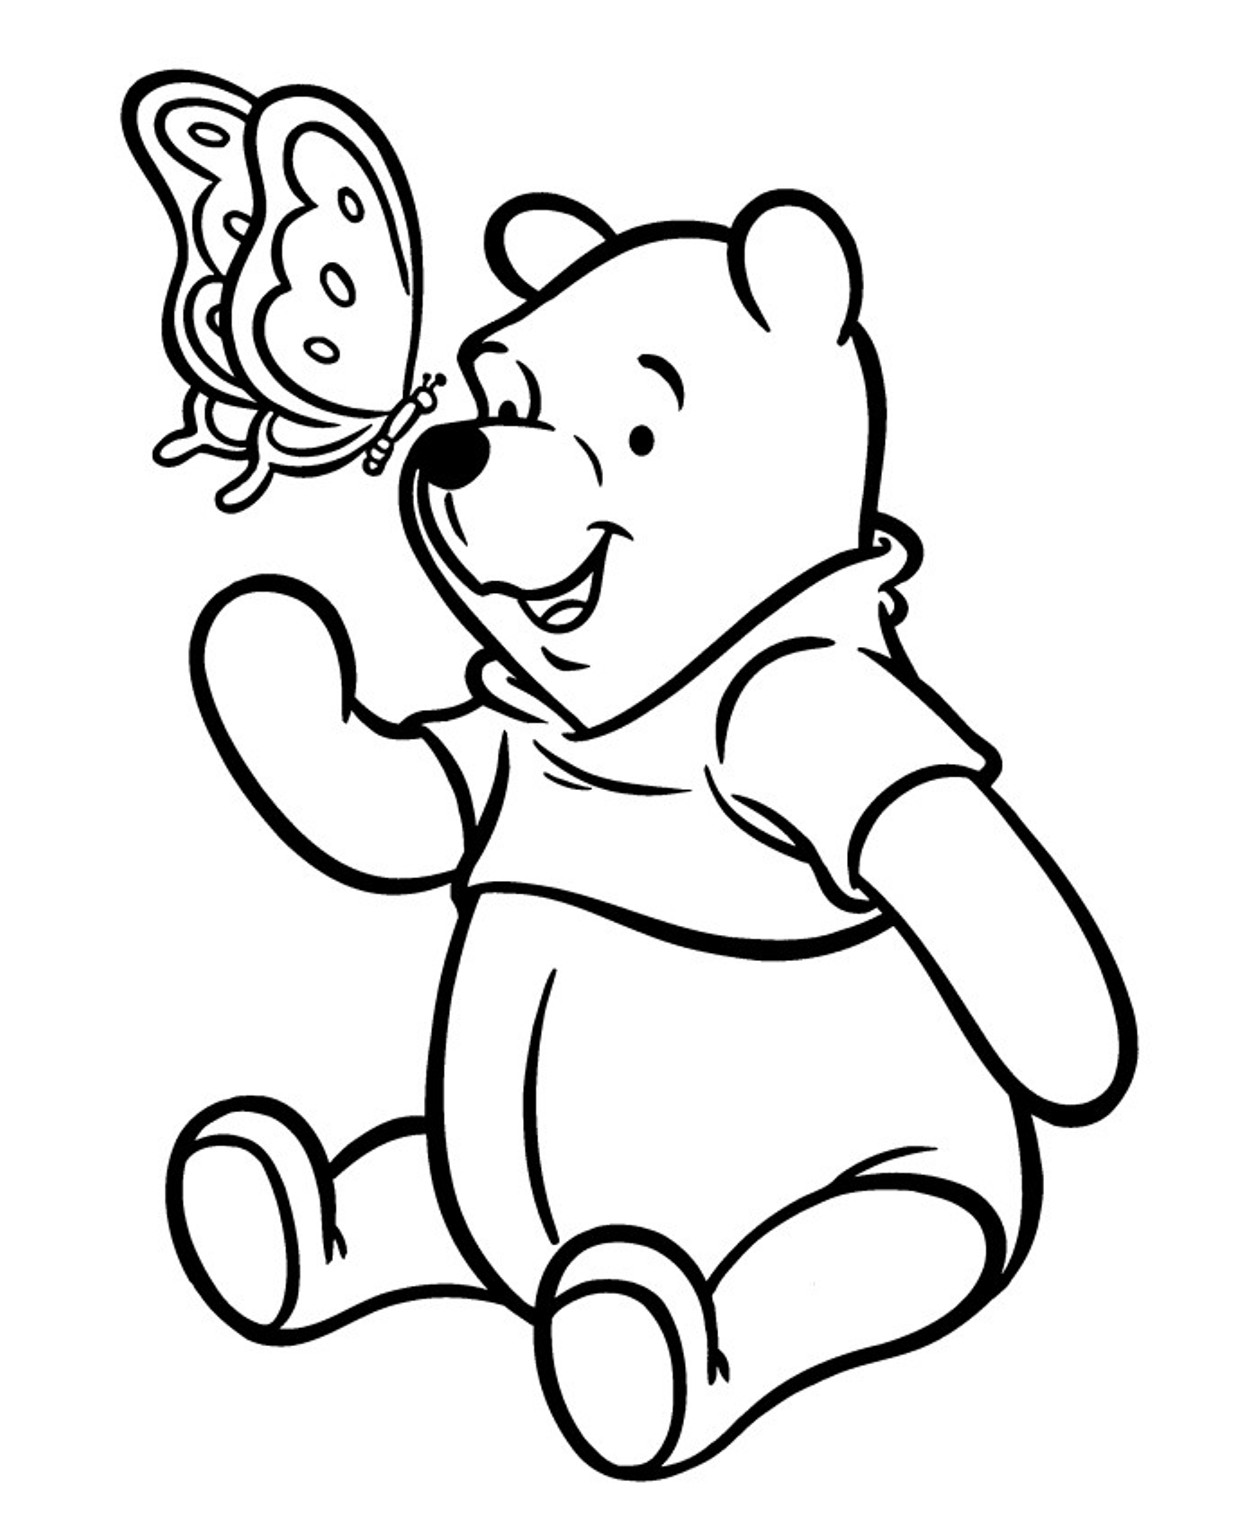 pooh bear coloring page pooh bear coloring pages to download and print for free page bear coloring pooh